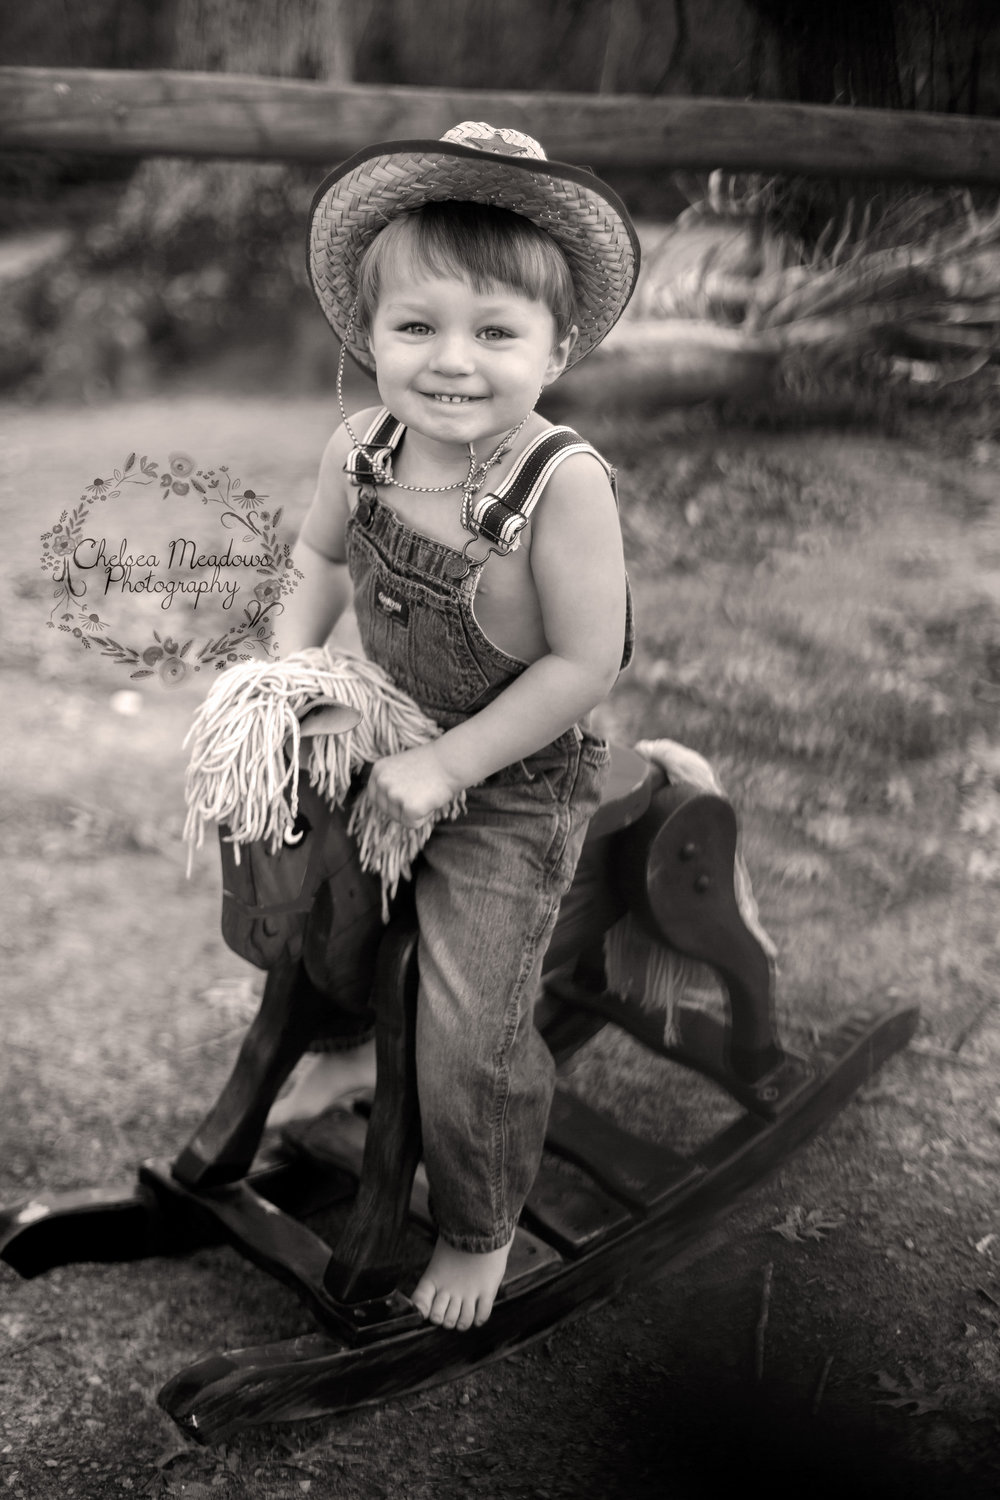 Grayson Cowboy Photos - Nashville family Photographer - Chelsea Meadows Photography (46)_edited-2.jpg